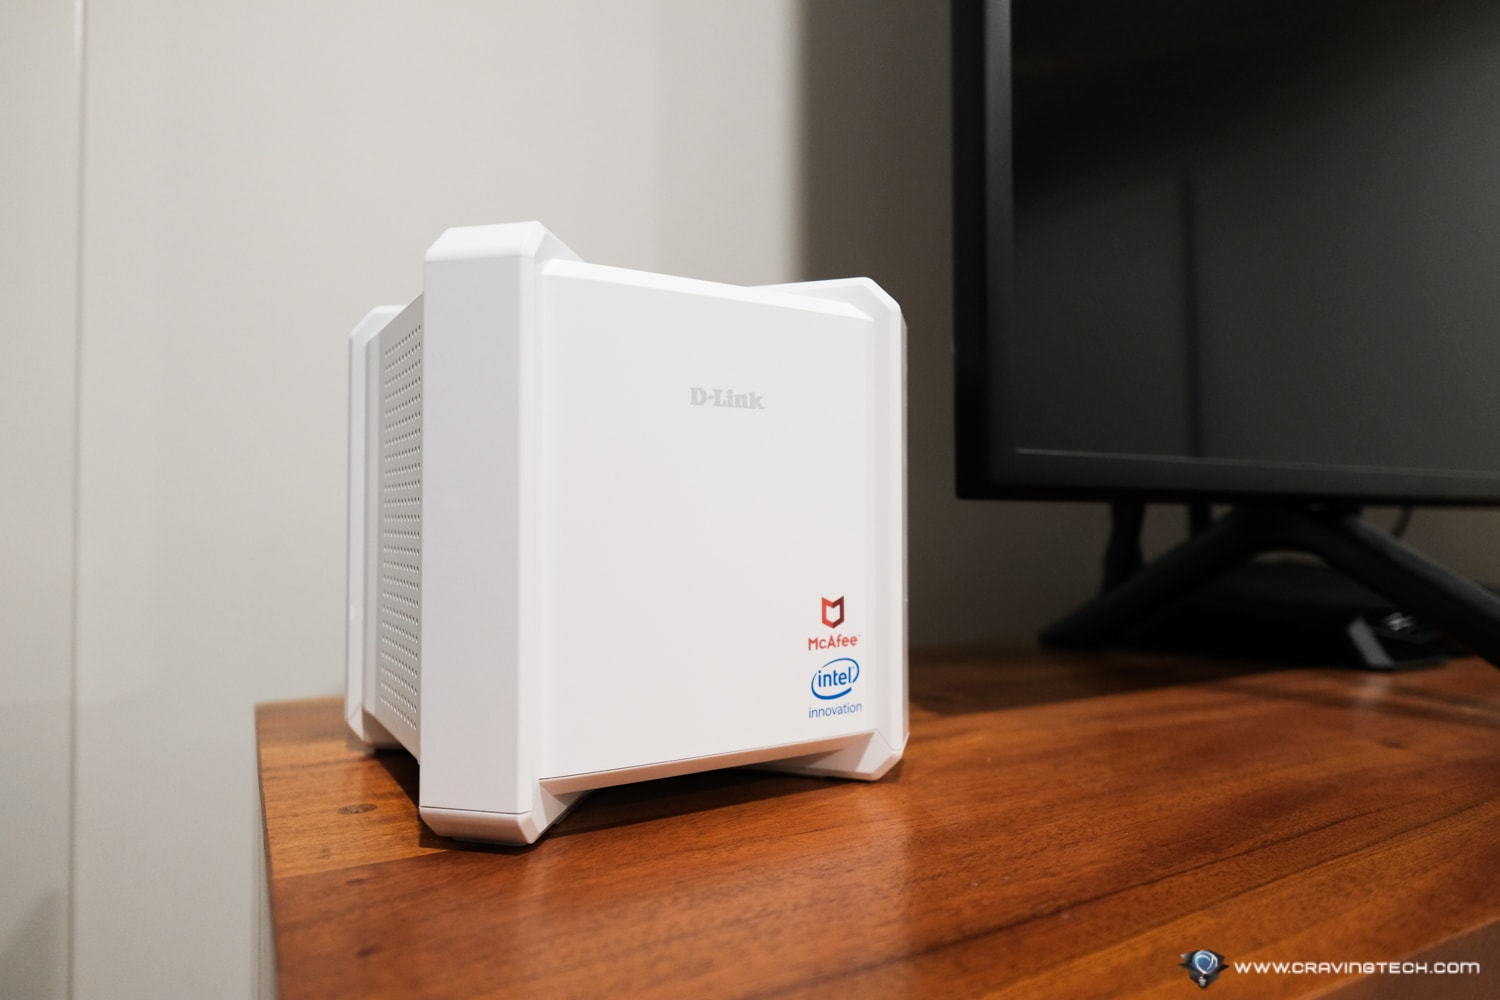 Security & Parental Controls at the touch of your hand – D-Link D-Fend AC2600 Router Review